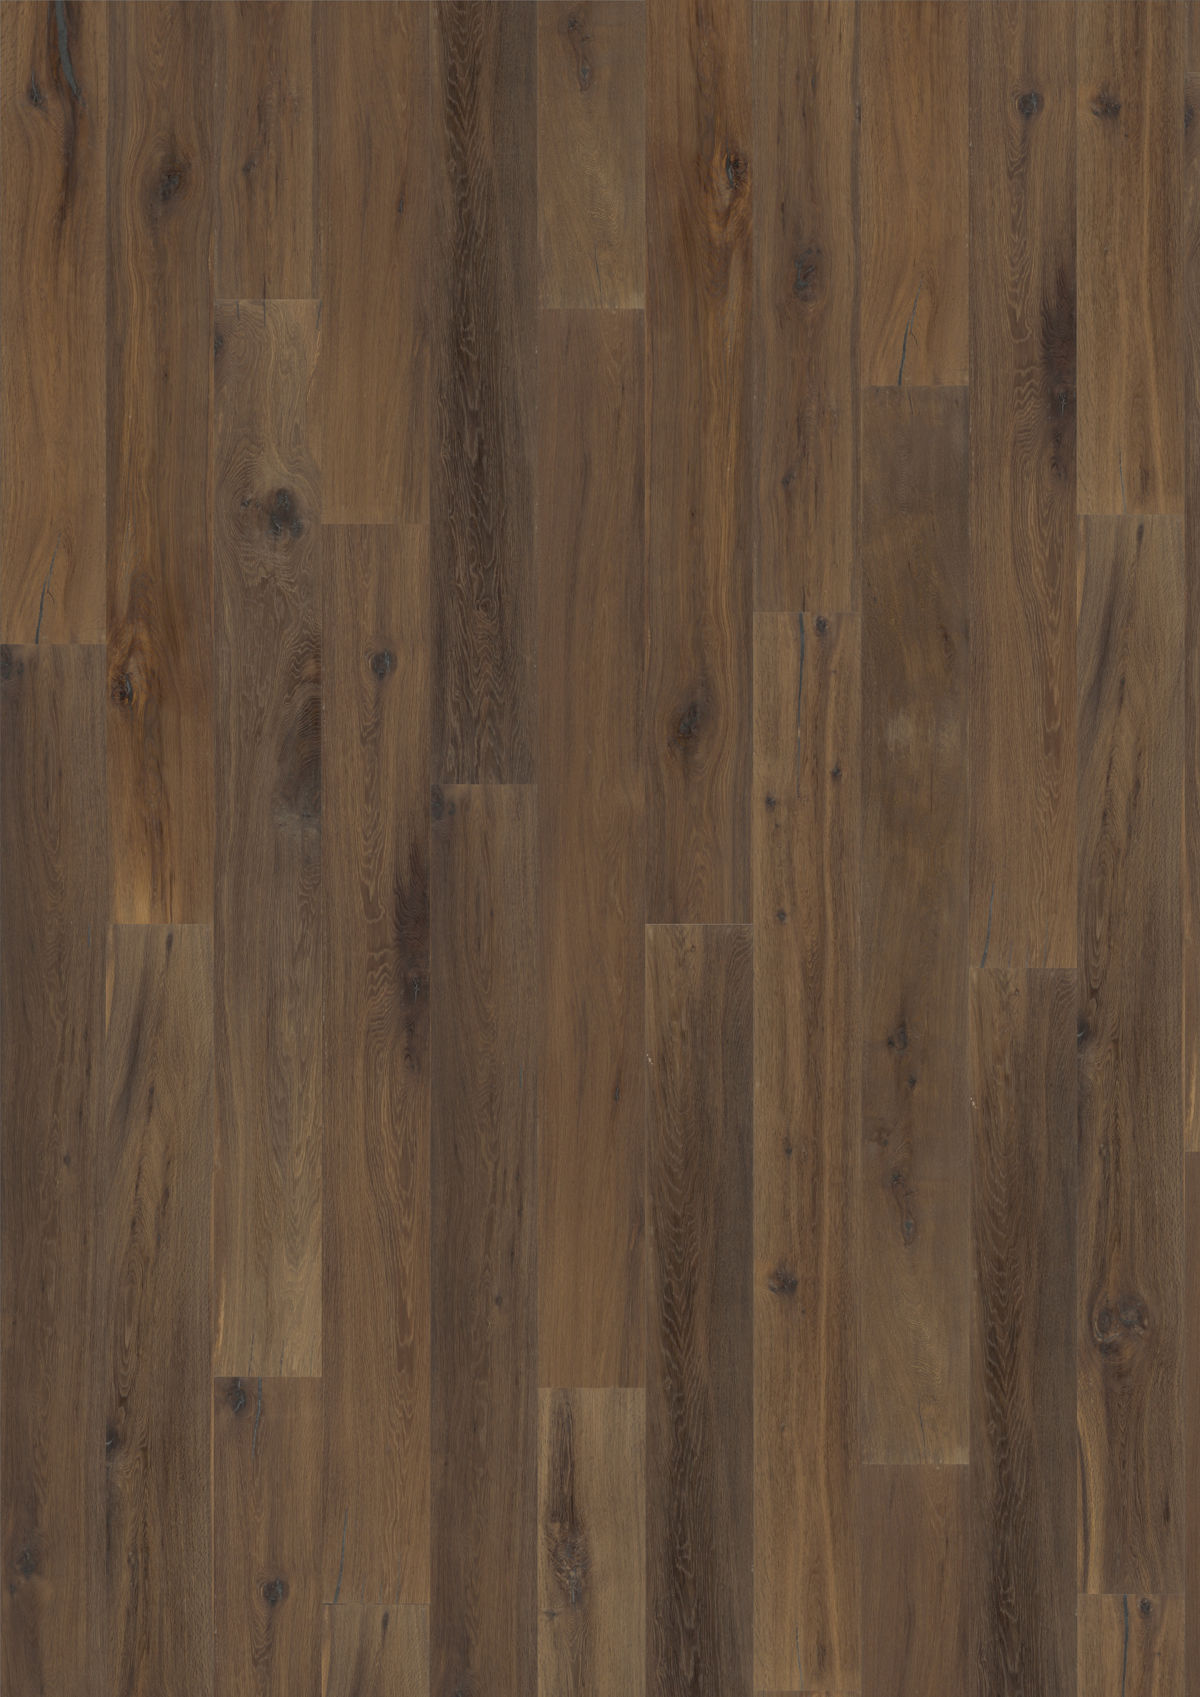 Kahrs Artisan Oak Earth Engineered Wood Flooring